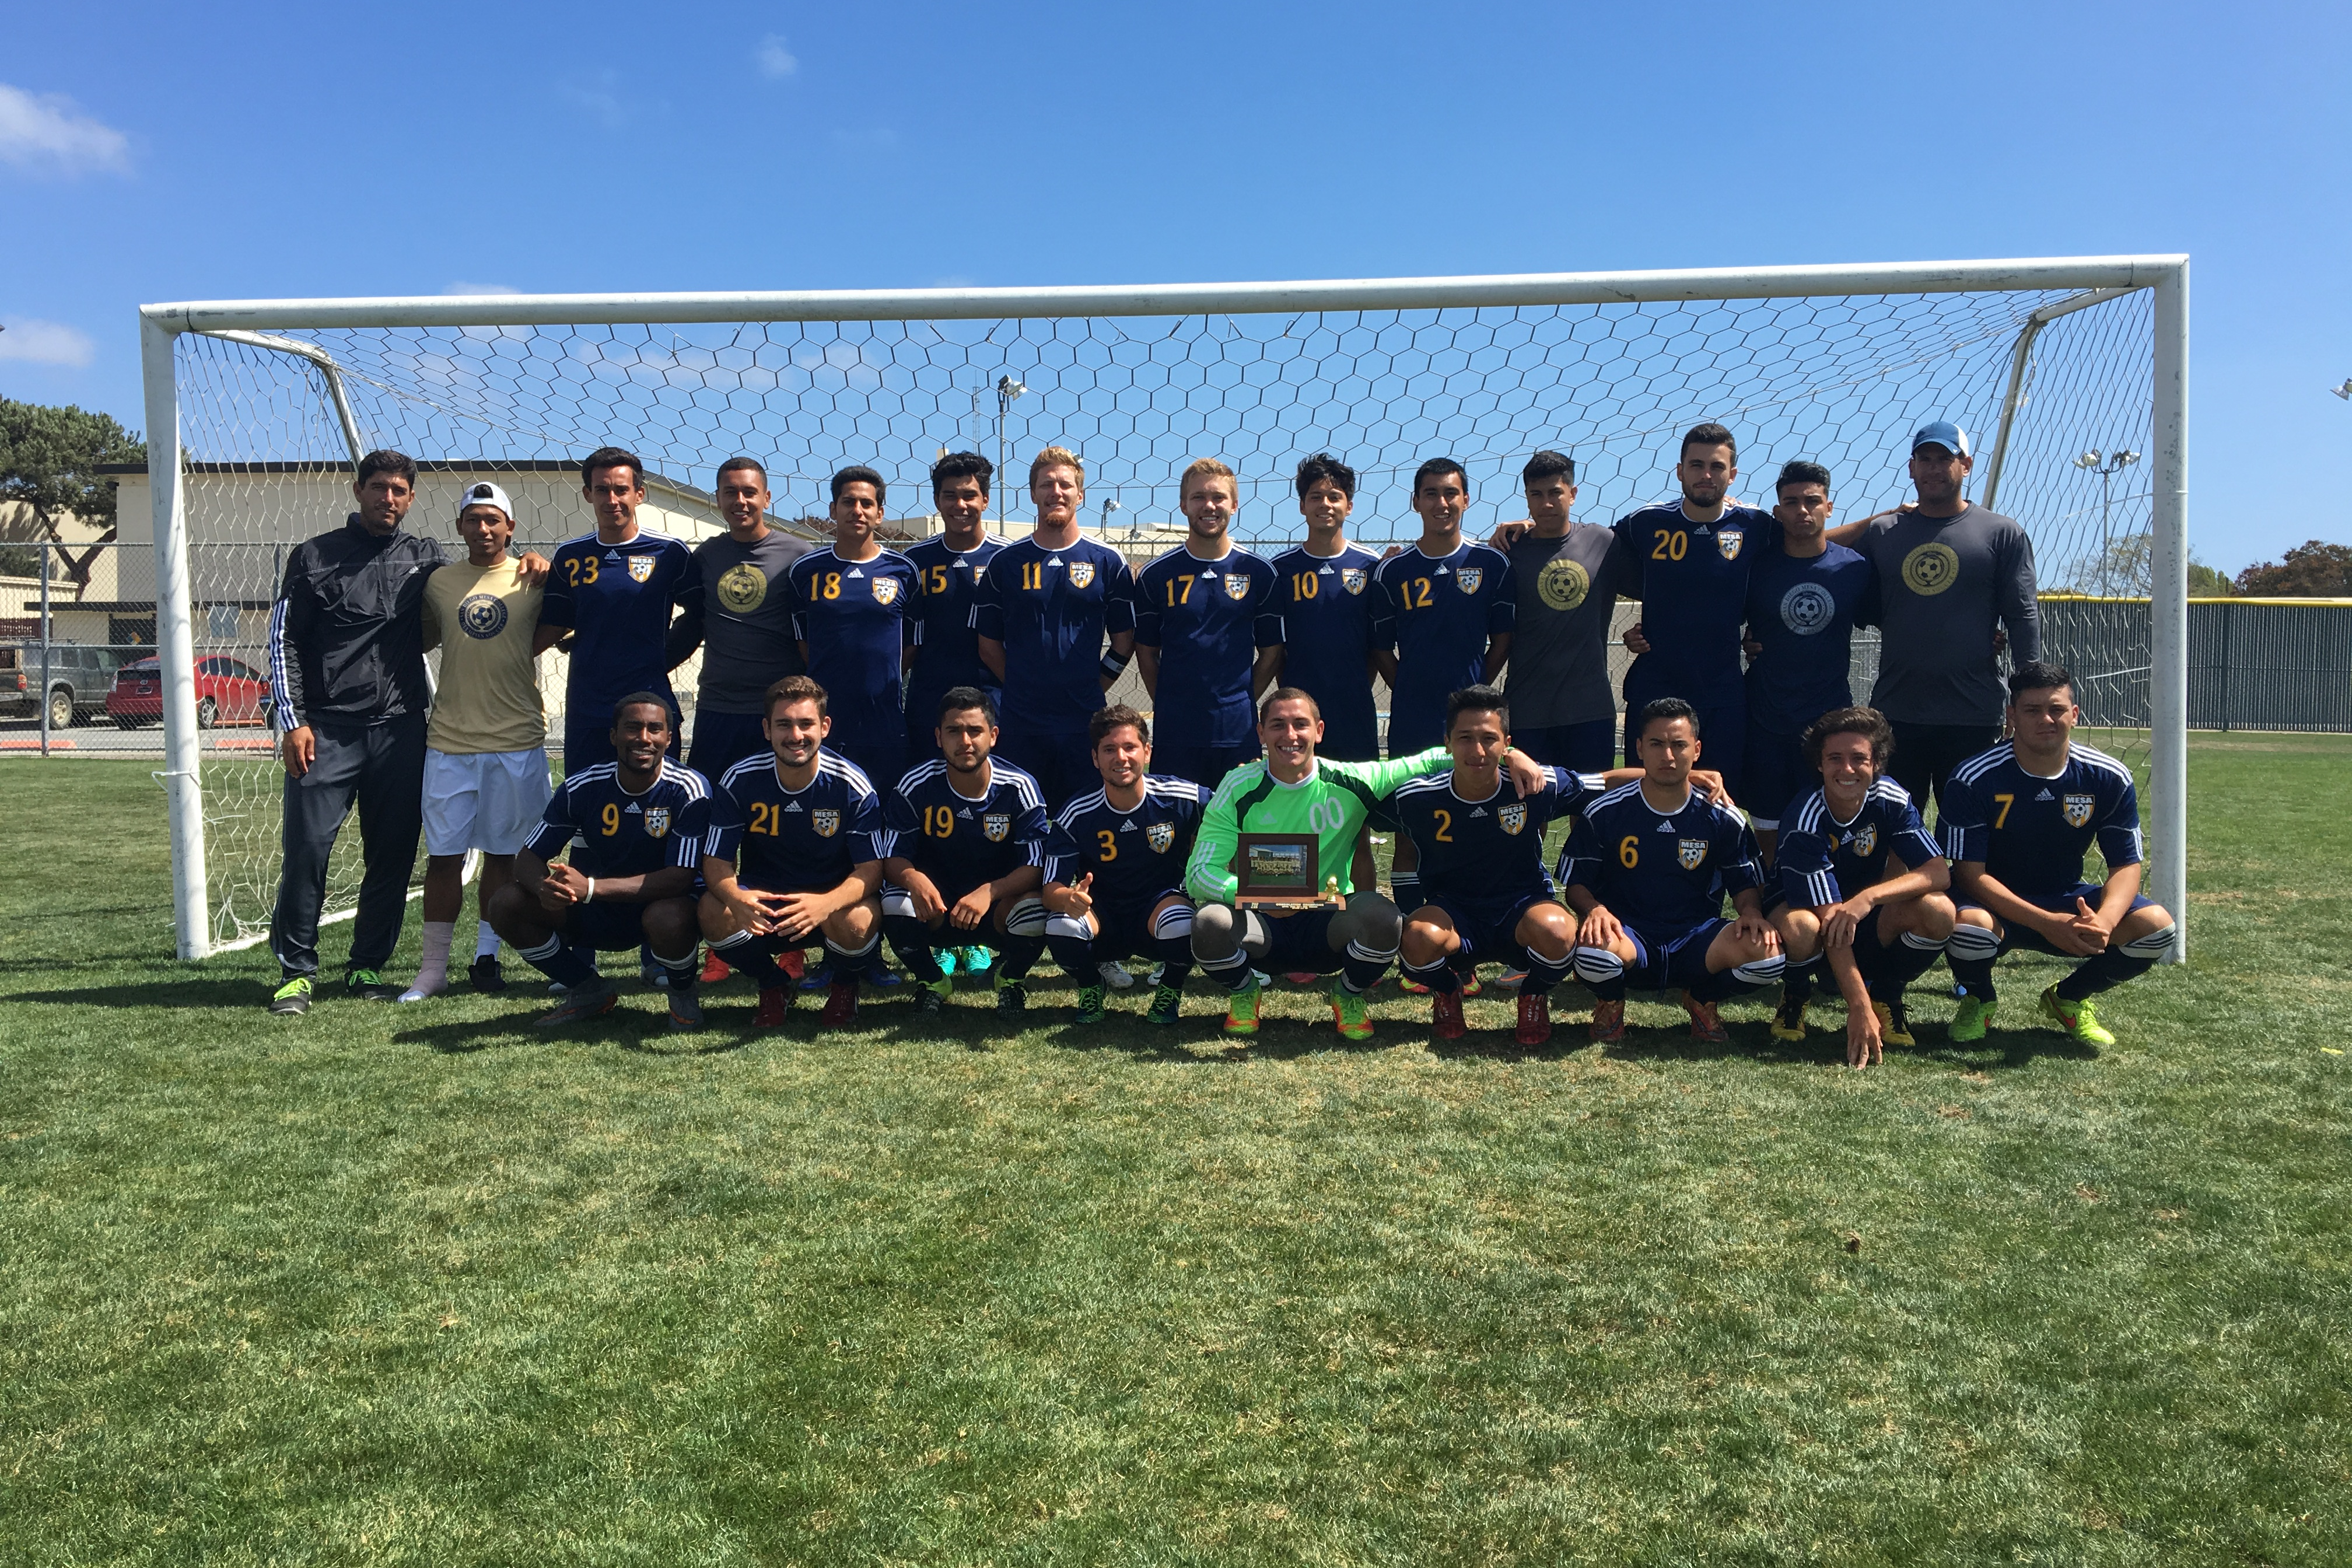 San Diego Mesa College's men's soccer team (8-4-9) will travel to take on Oxnard College (11-2-8) in a playoff game on Saturday, Nov. 19.